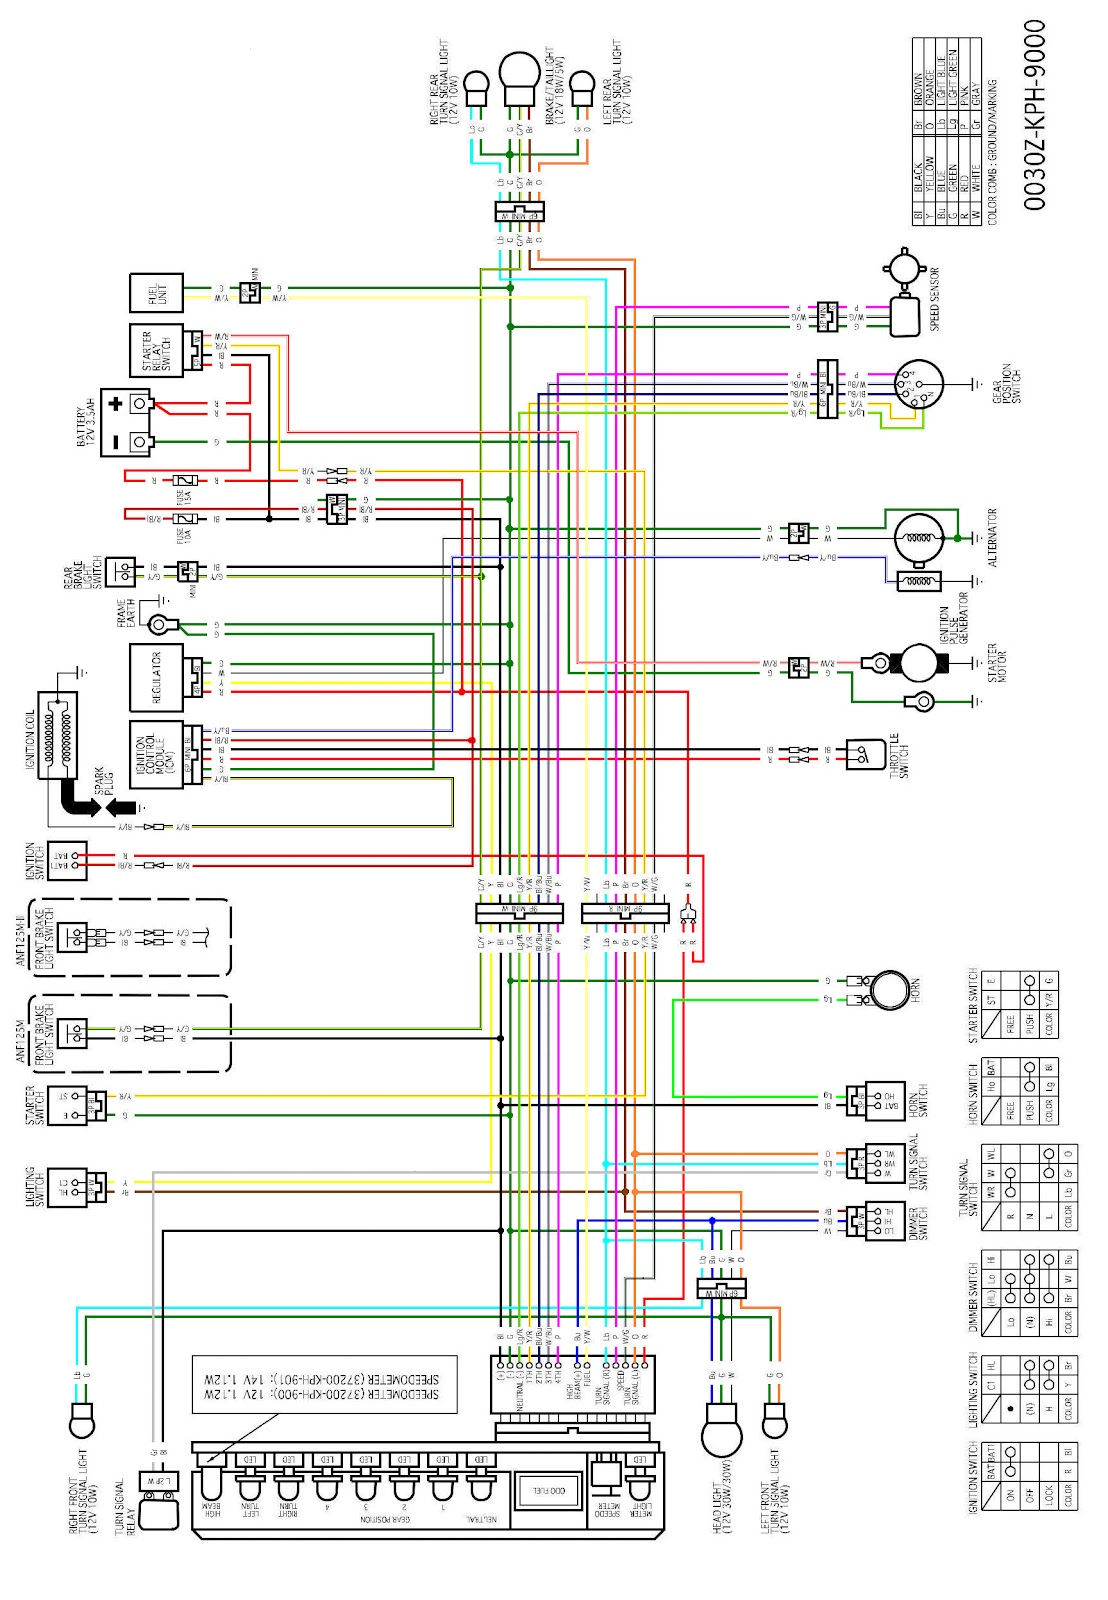 1977 Ct90 Wiring Diagram Questions On Venn Diagrams With Solutions Honda Xl175 Xl75 Odicis